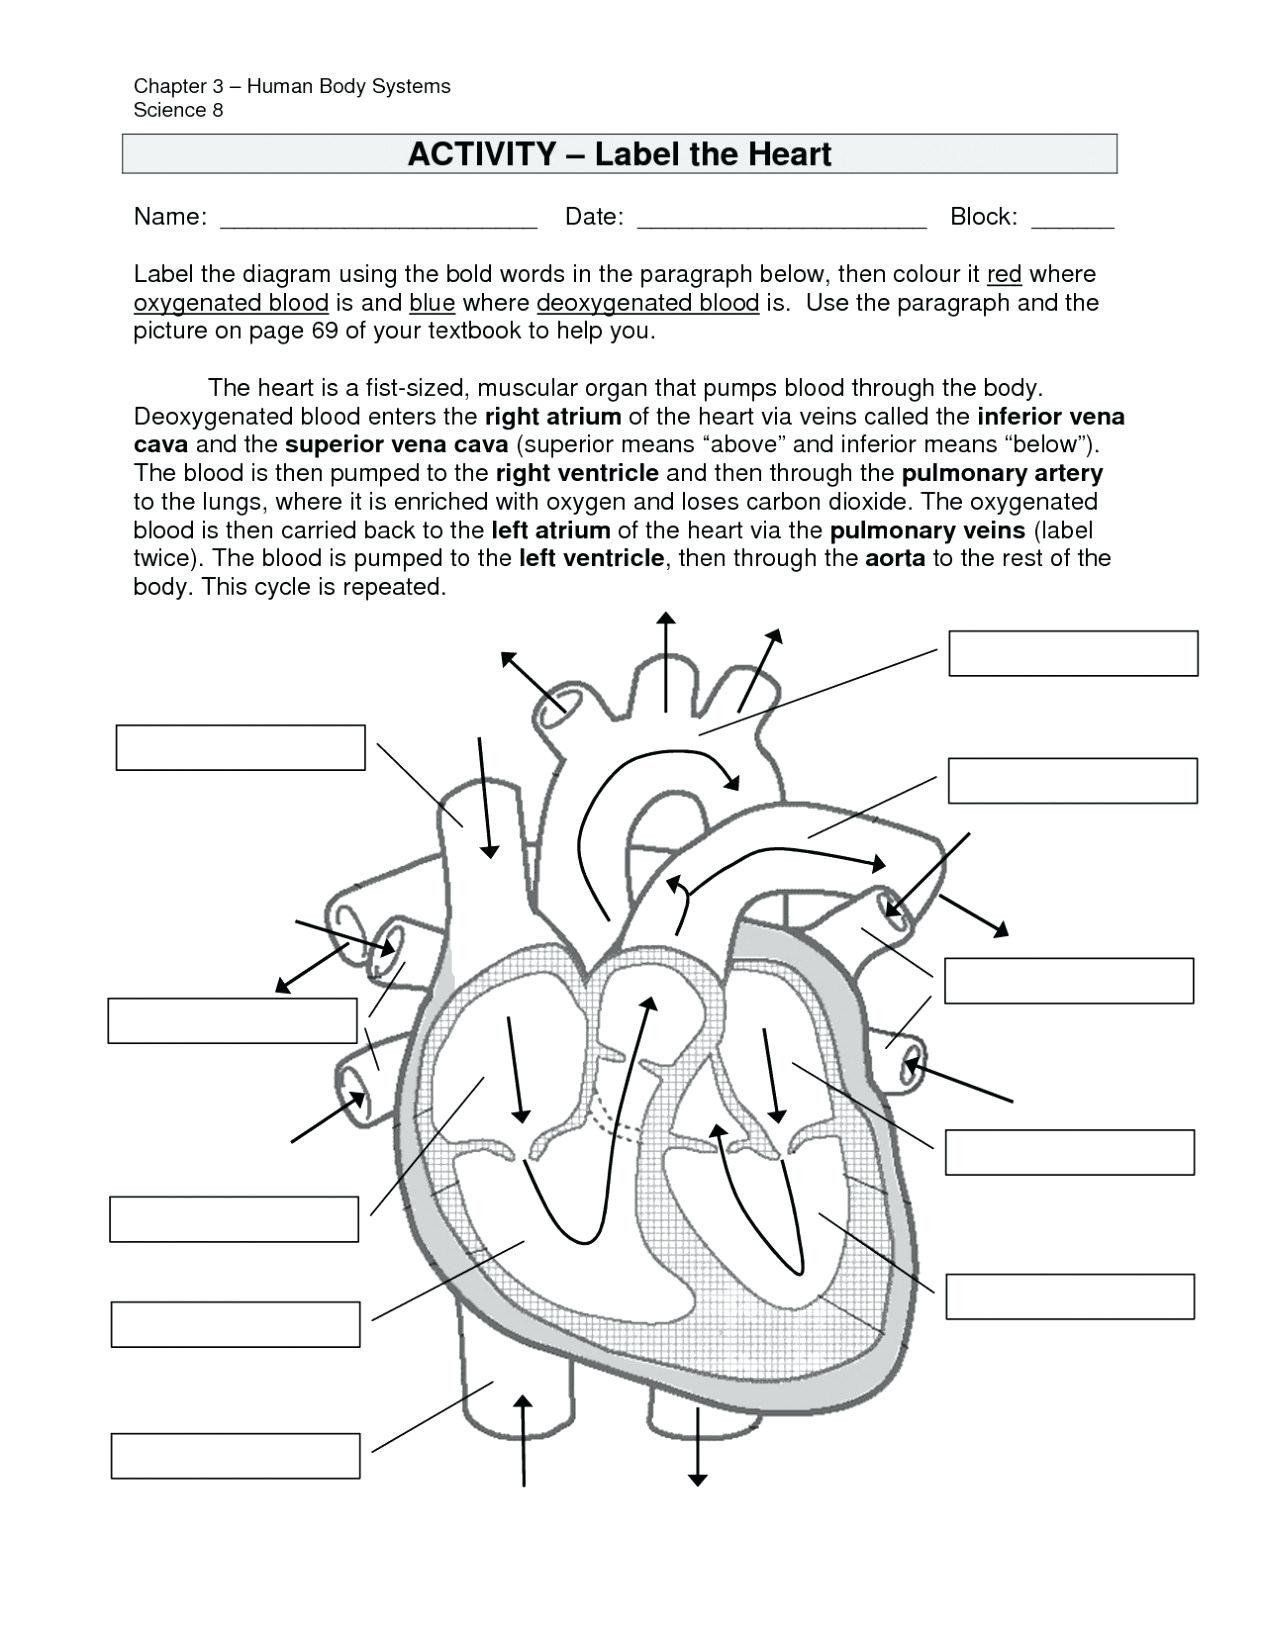 Digestive System Worksheet Answer Key Pin On Coloring Pages Ideas Printable Circulatory System Circulatory Sys In 2020 Heart Diagram Human Heart Diagram Heart For Kids